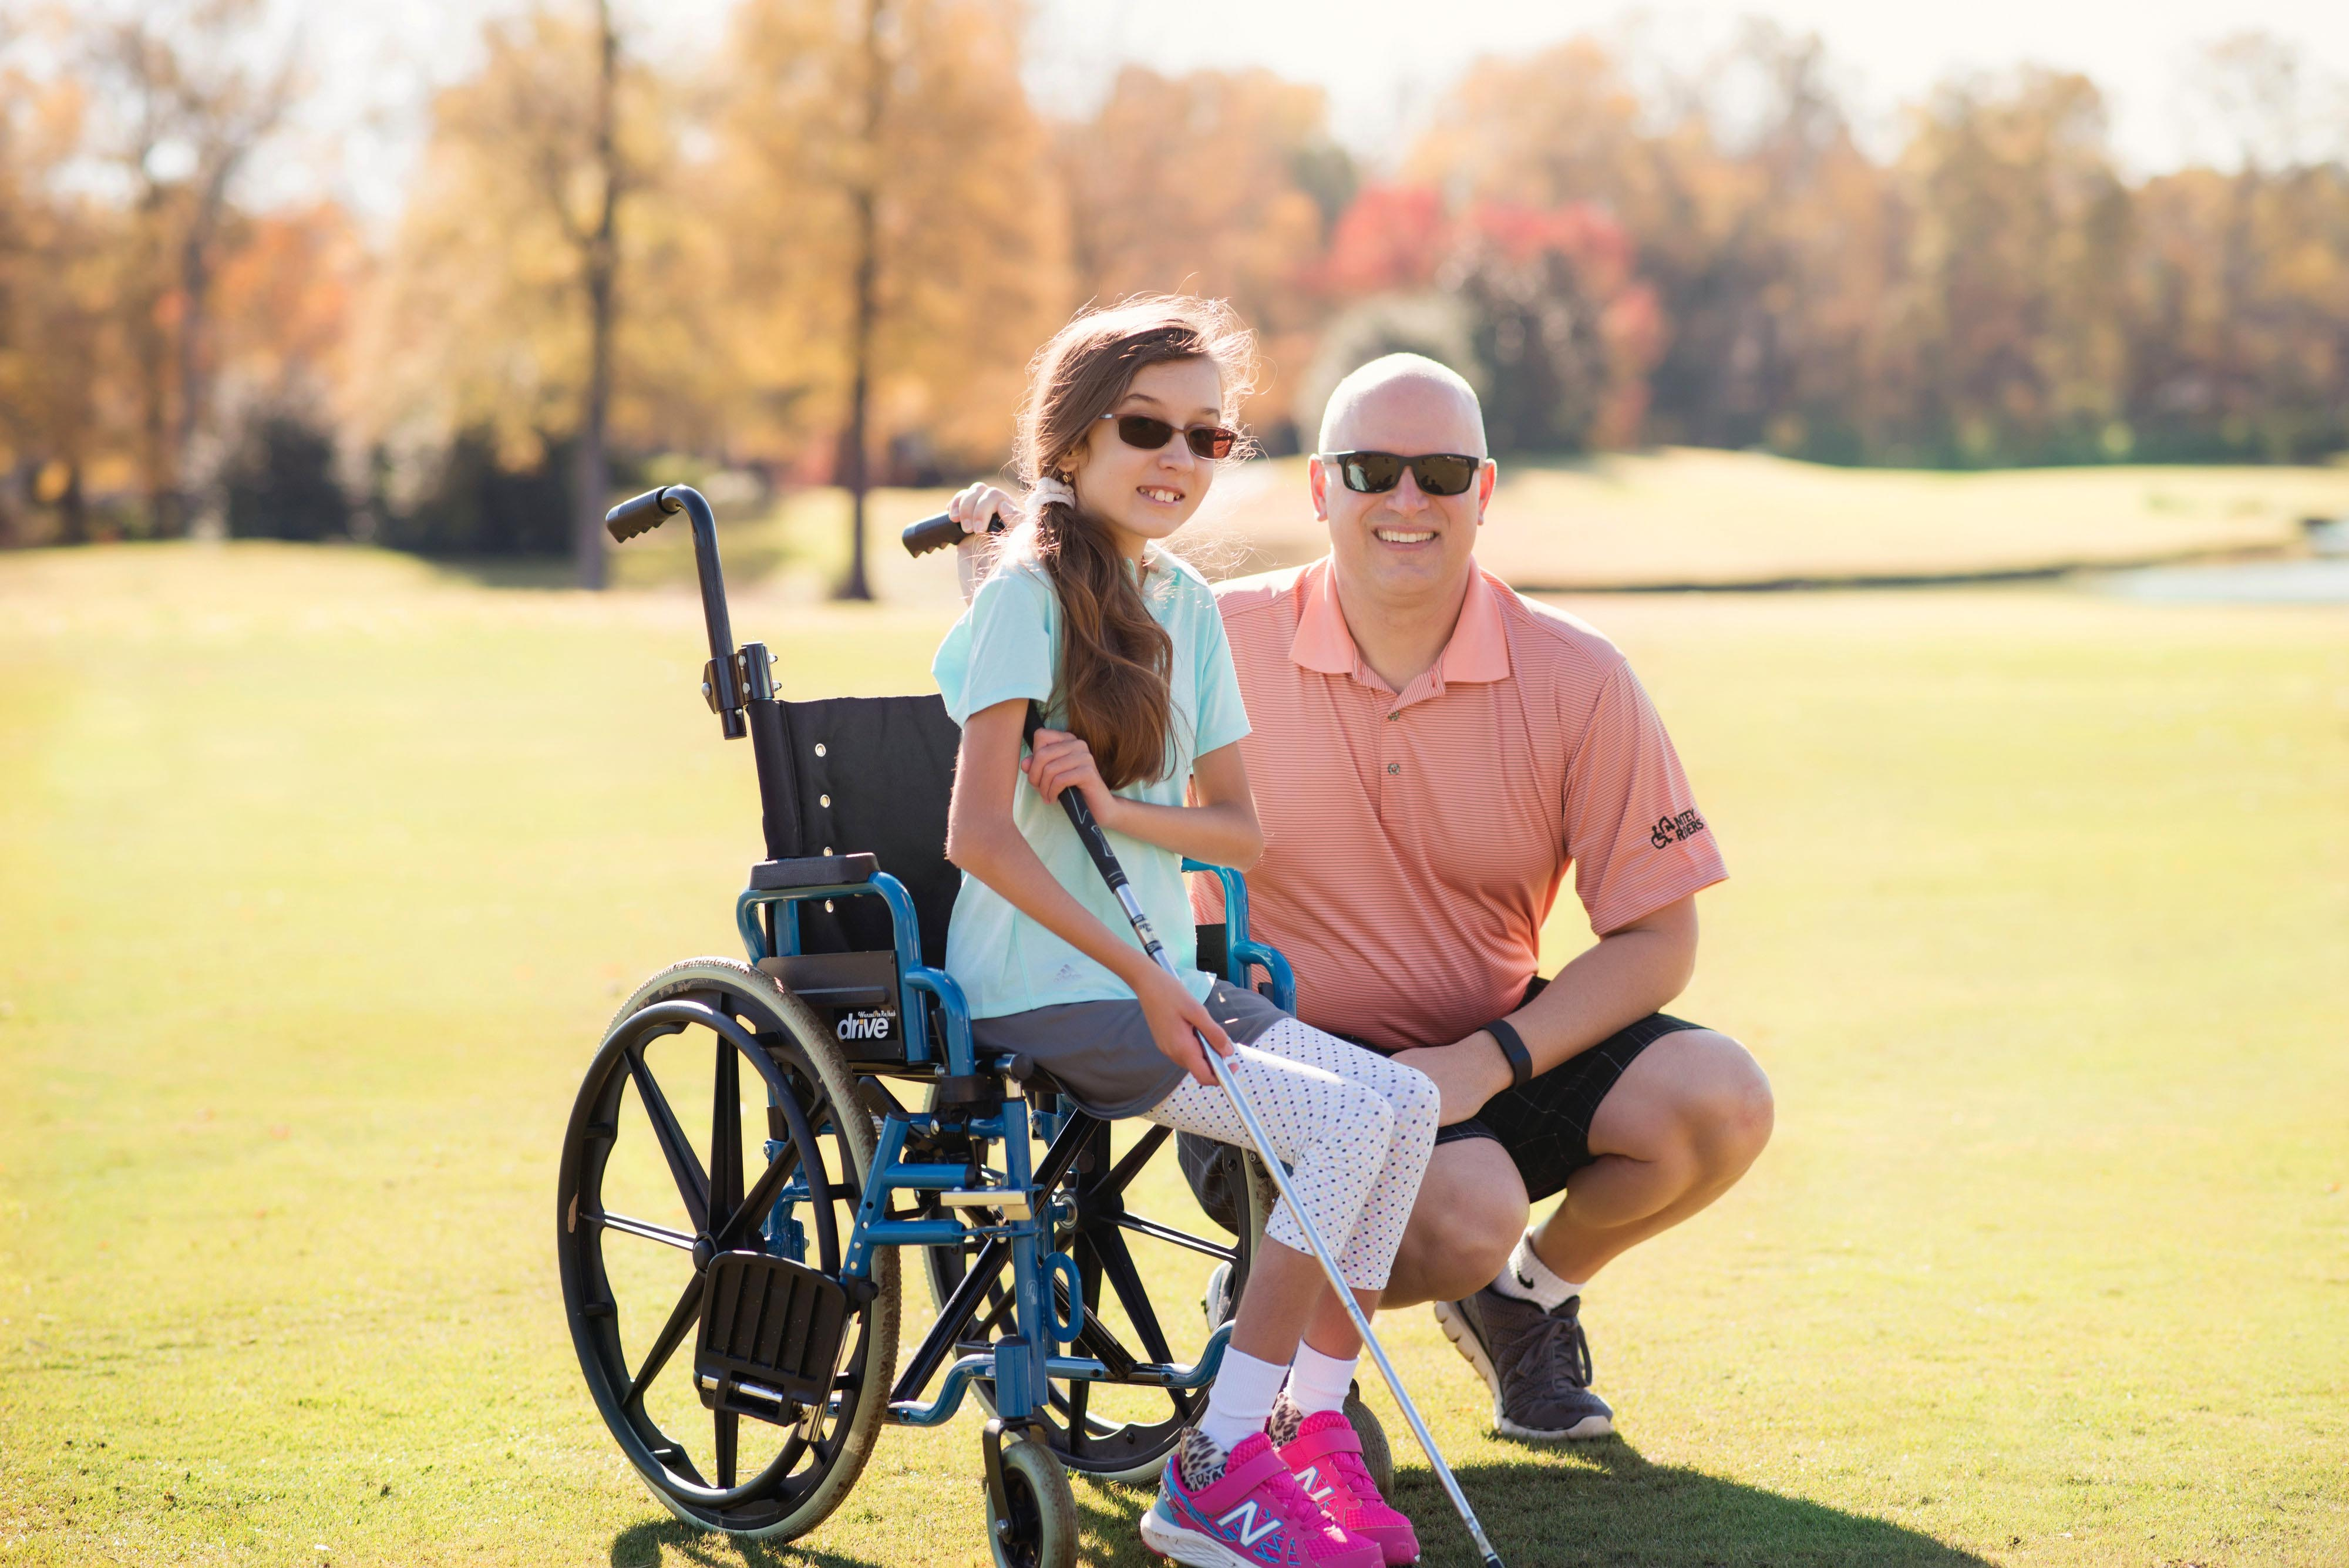 A picture of an MDA golf event.